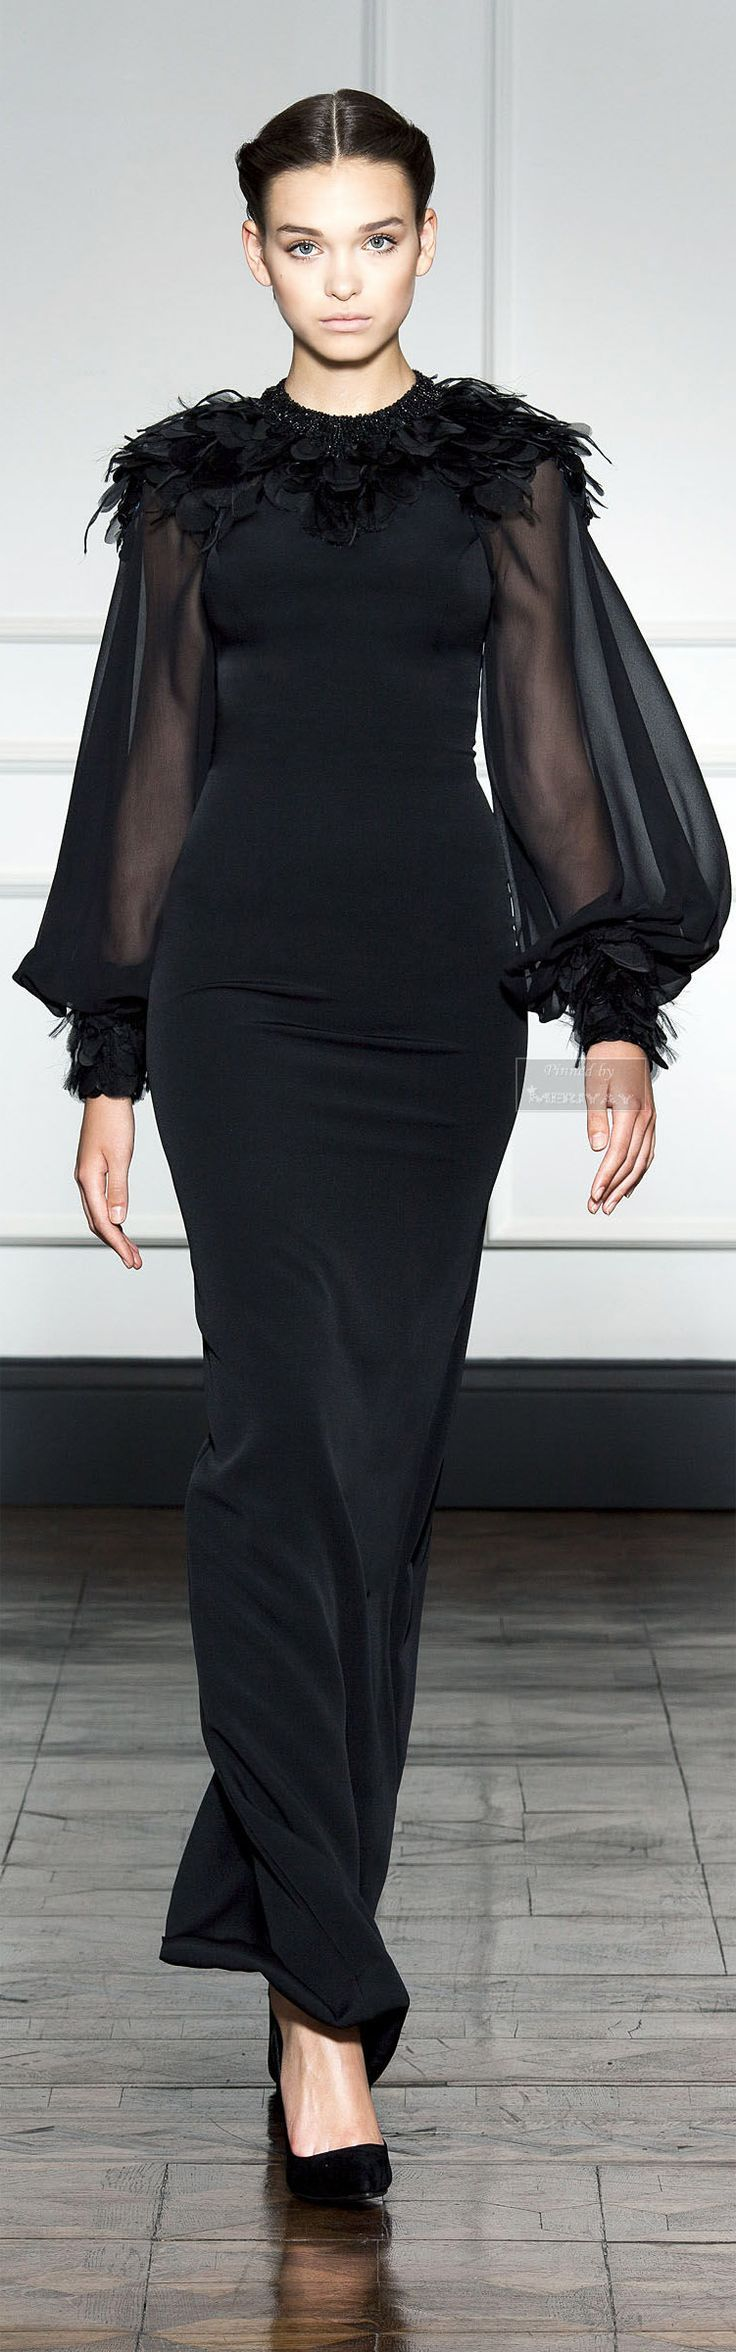 Dilek Hanif F/W 2014-15 020315. If you love this then check out www.partiespearlsandbeingprecious.com